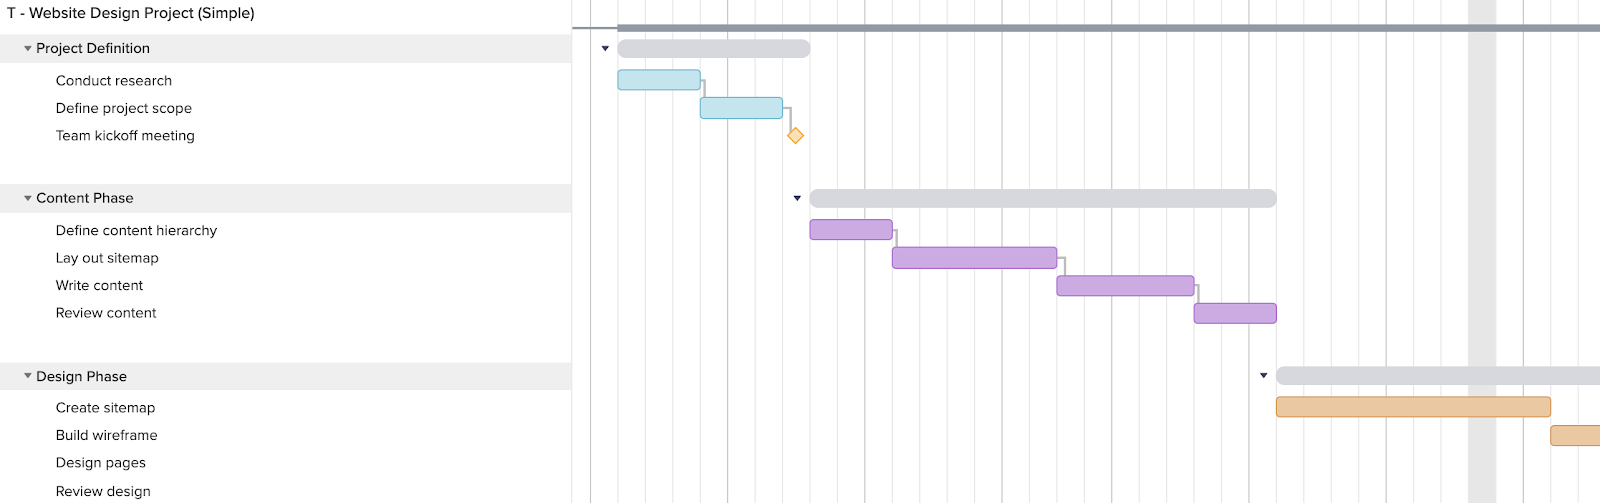 simple web design project gantt chart template